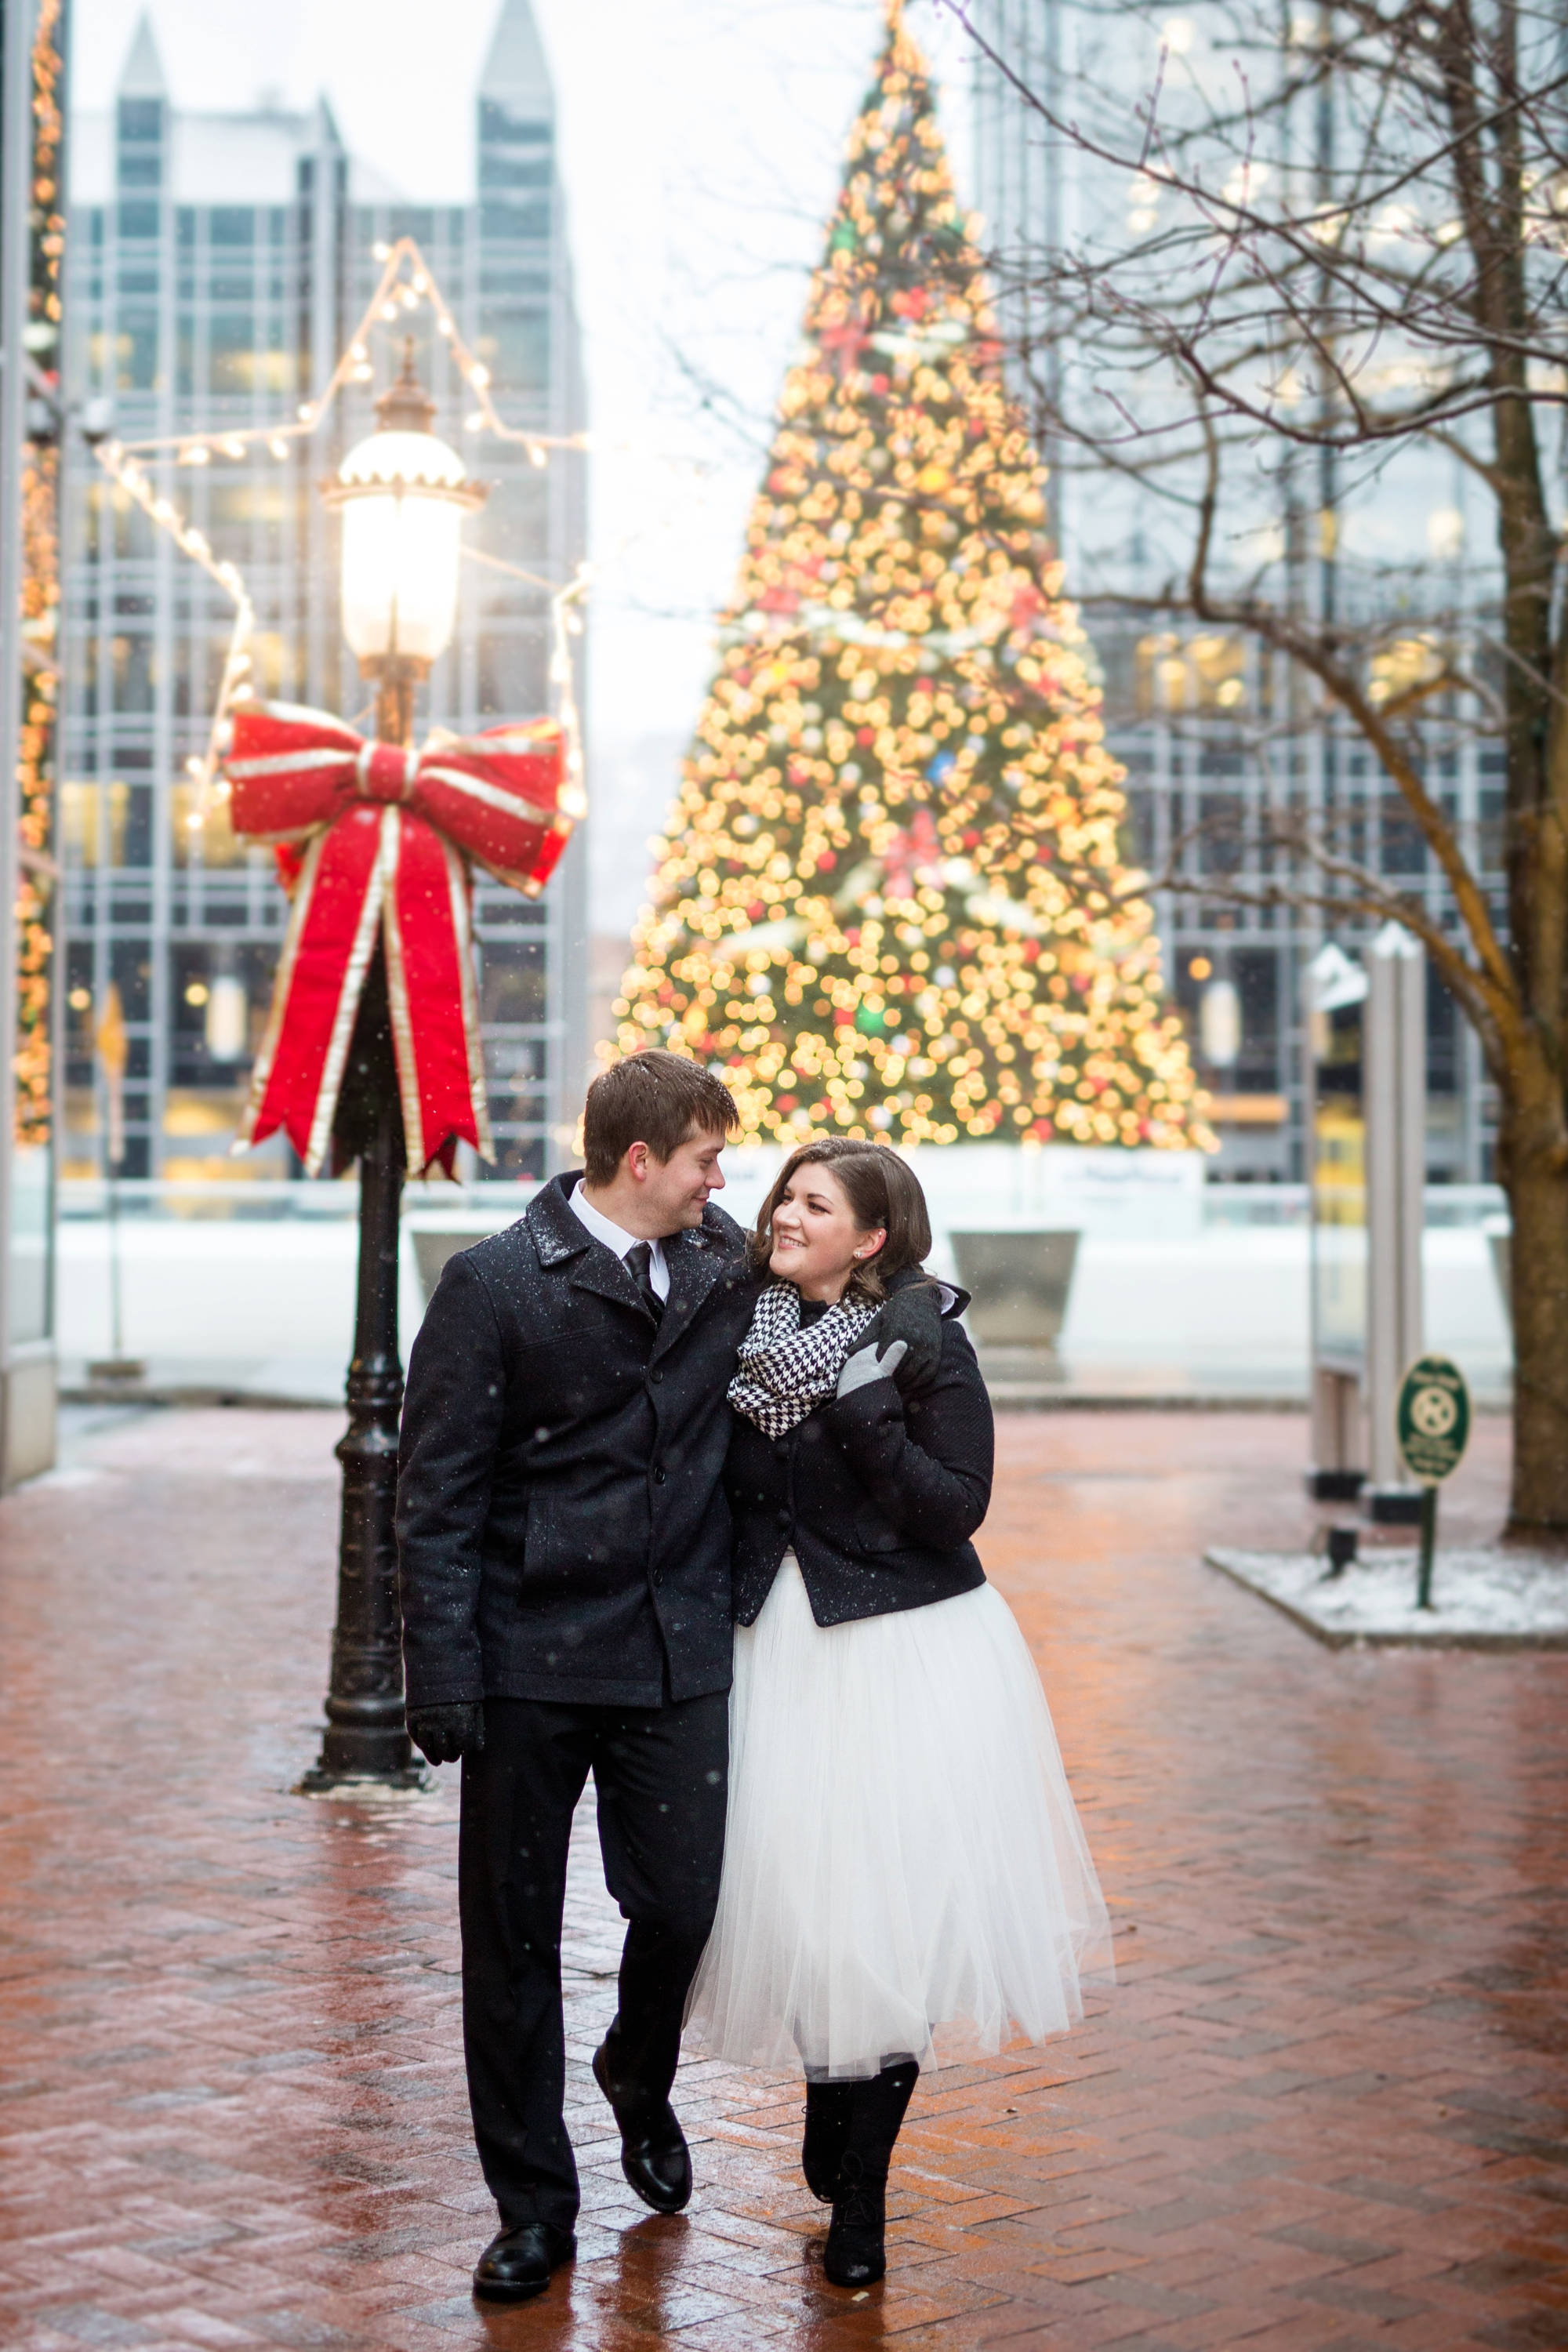 downtown pittsburgh engagement photos, downtown pittsburgh wedding photos, best location for photoshoot in pittsburgh